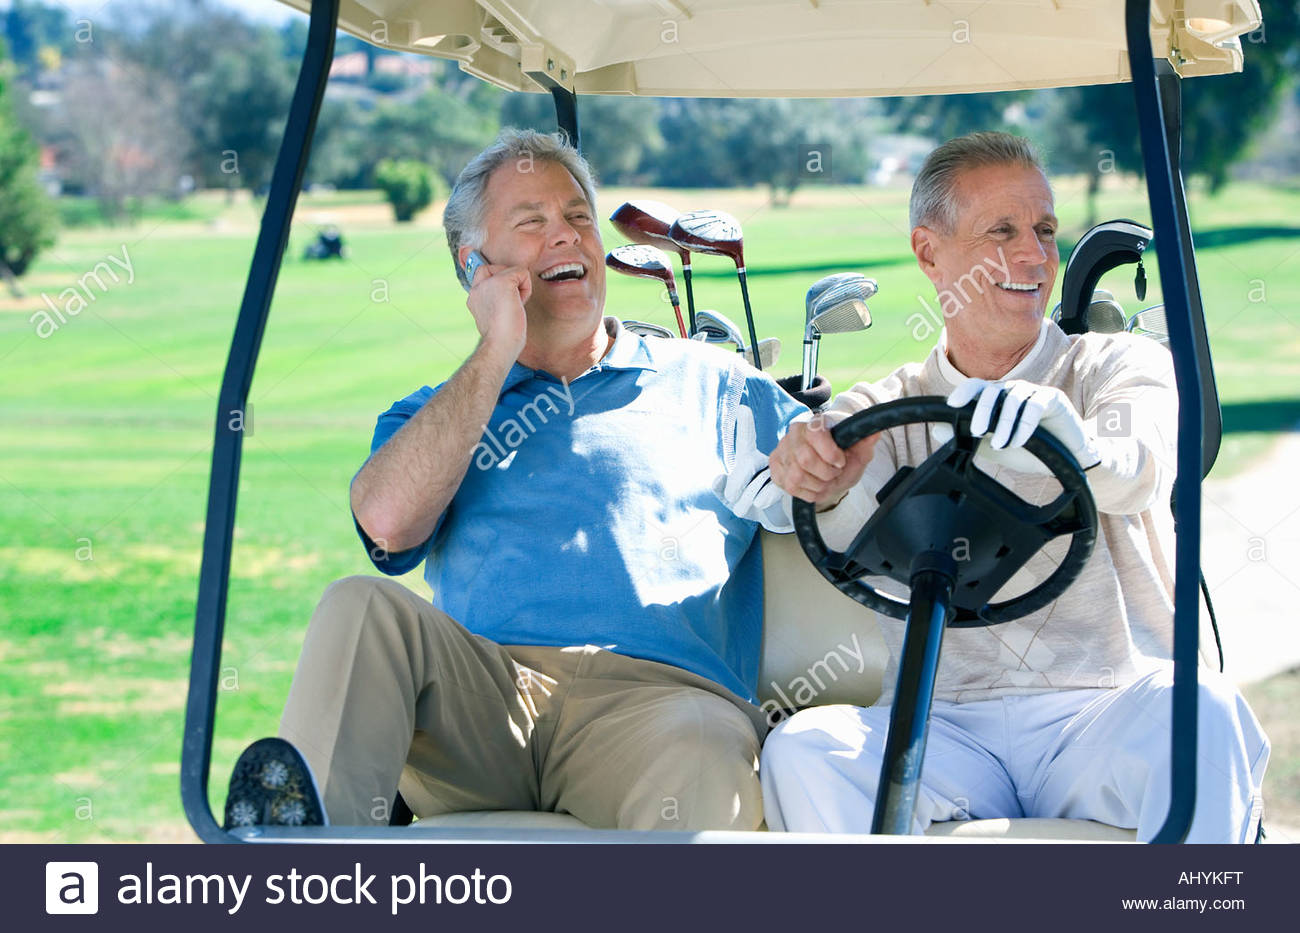 Two mature men sitting in golf buggy on golf course, one man driving, other man using mobile phone, smiling, front - Stock Image